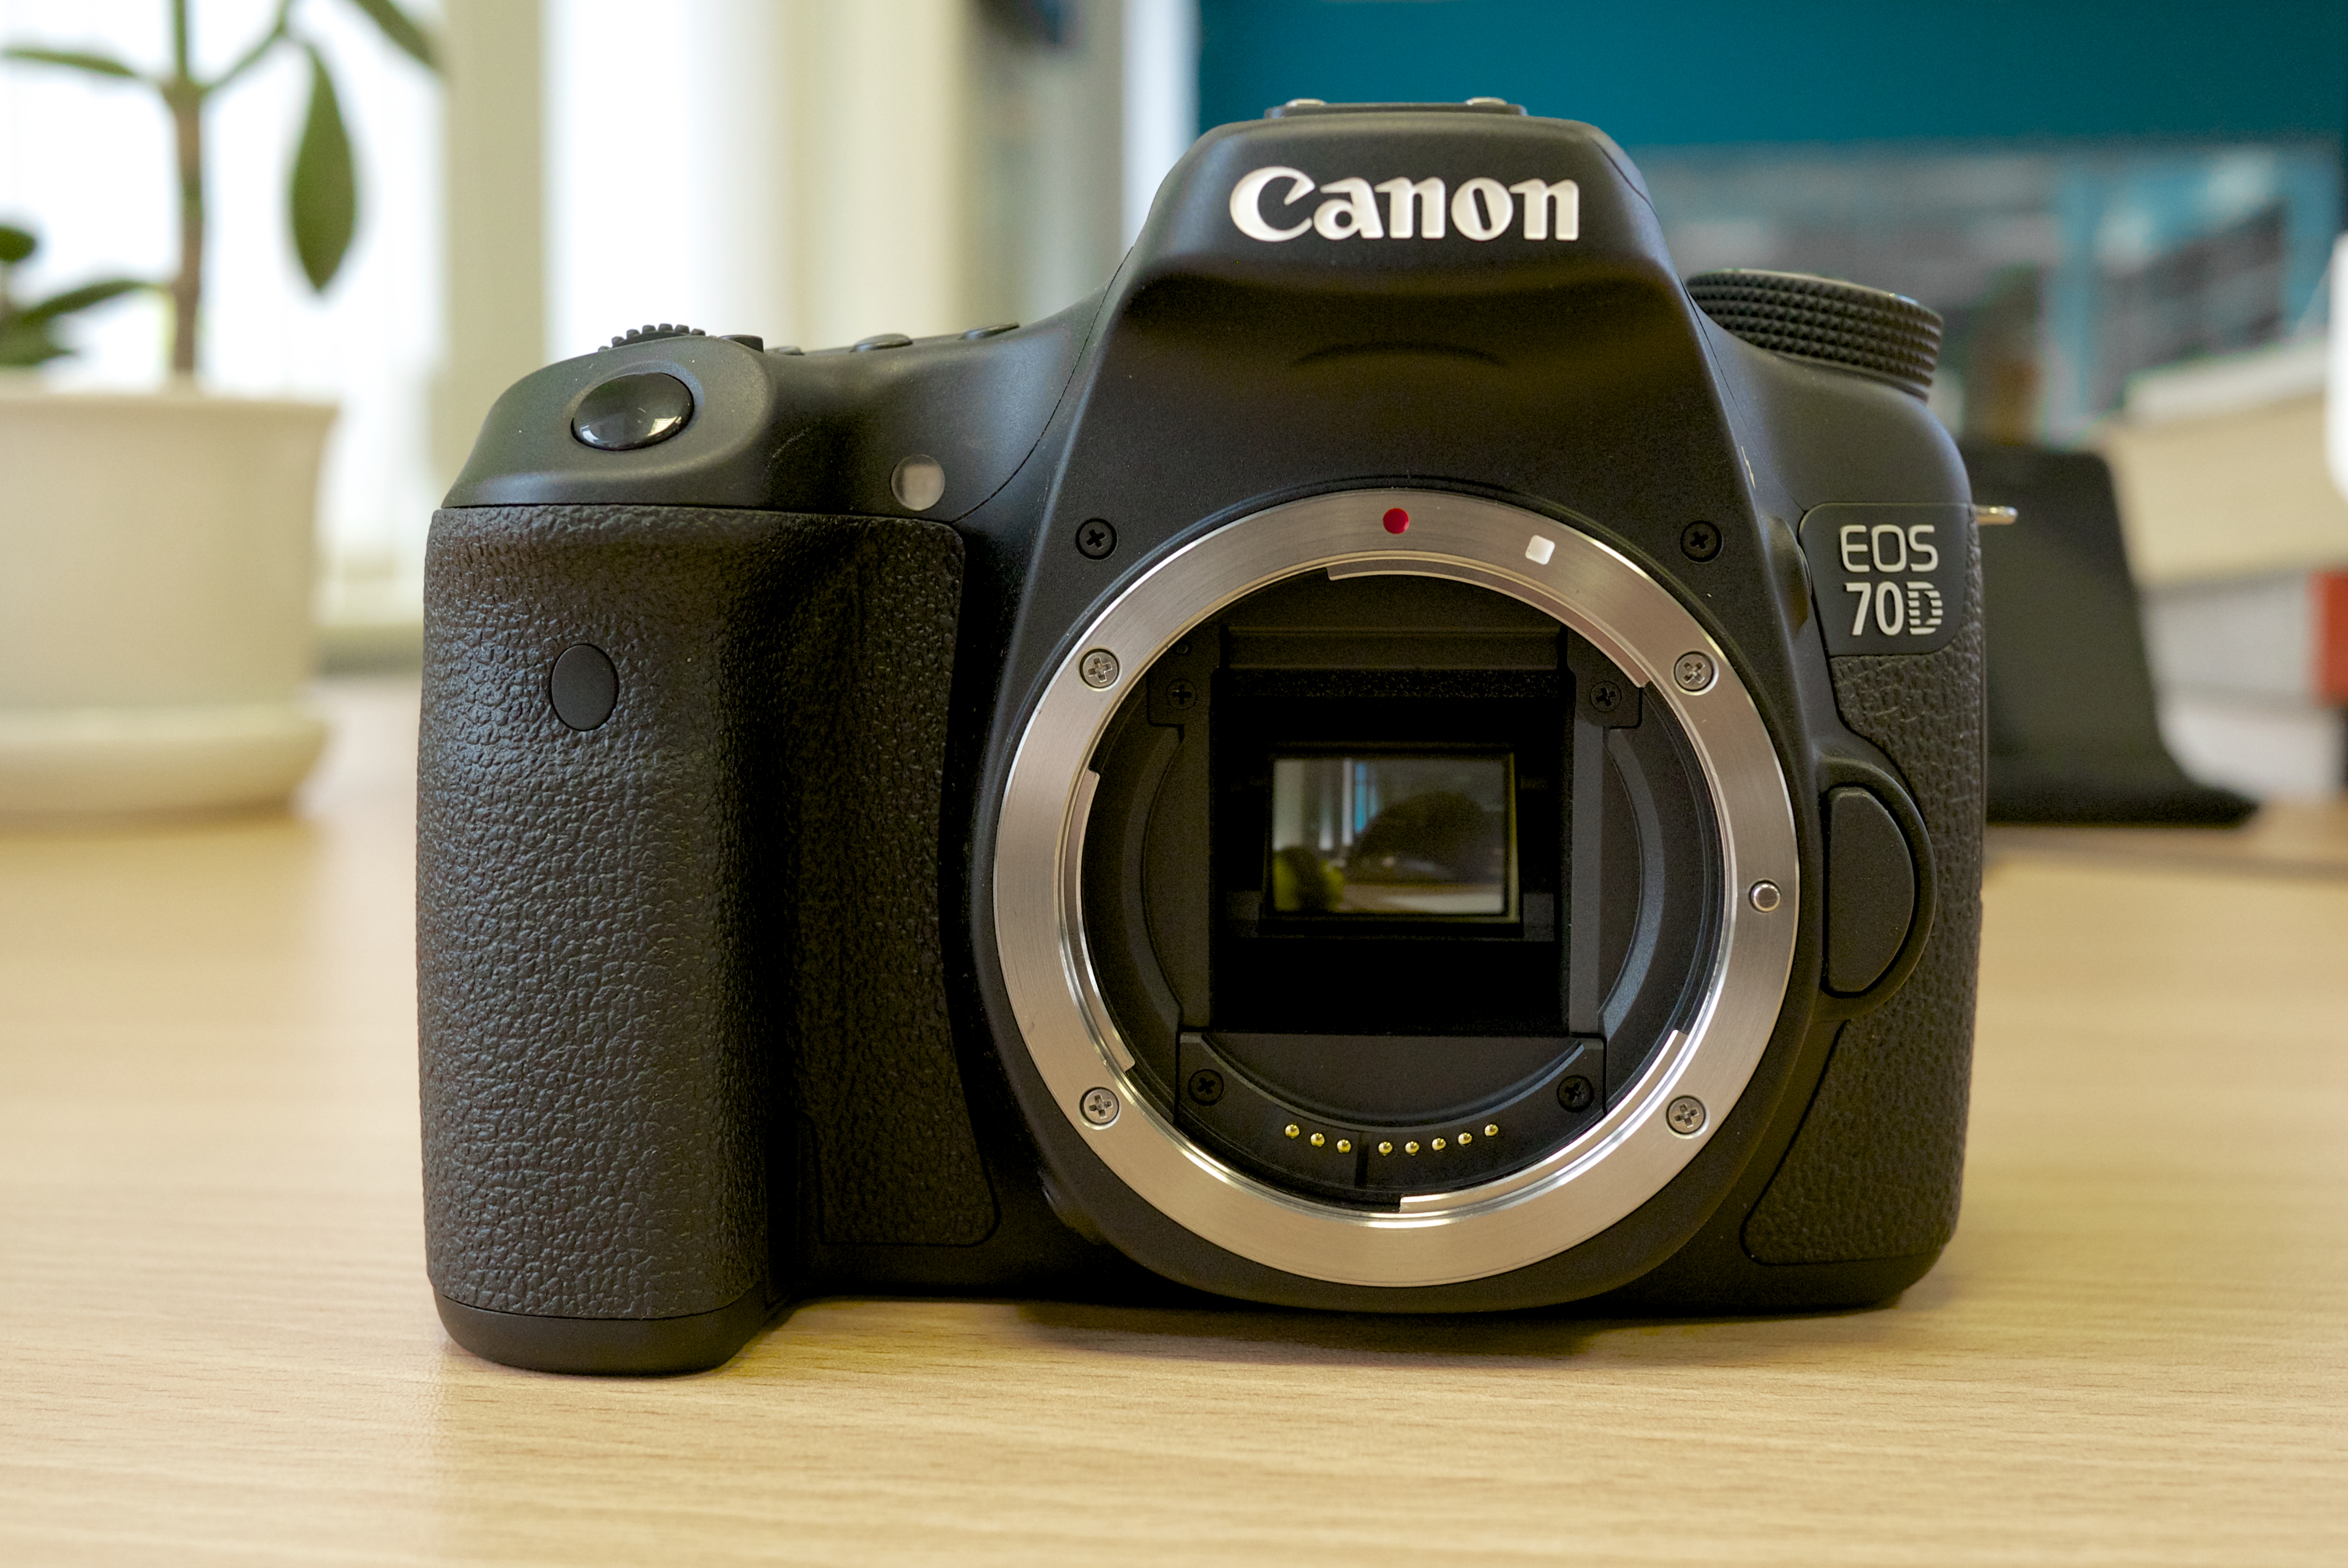 Camera Meaning Of Dslr Camera filecanon eos 70d camera body front view jpg wikimedia commons jpg